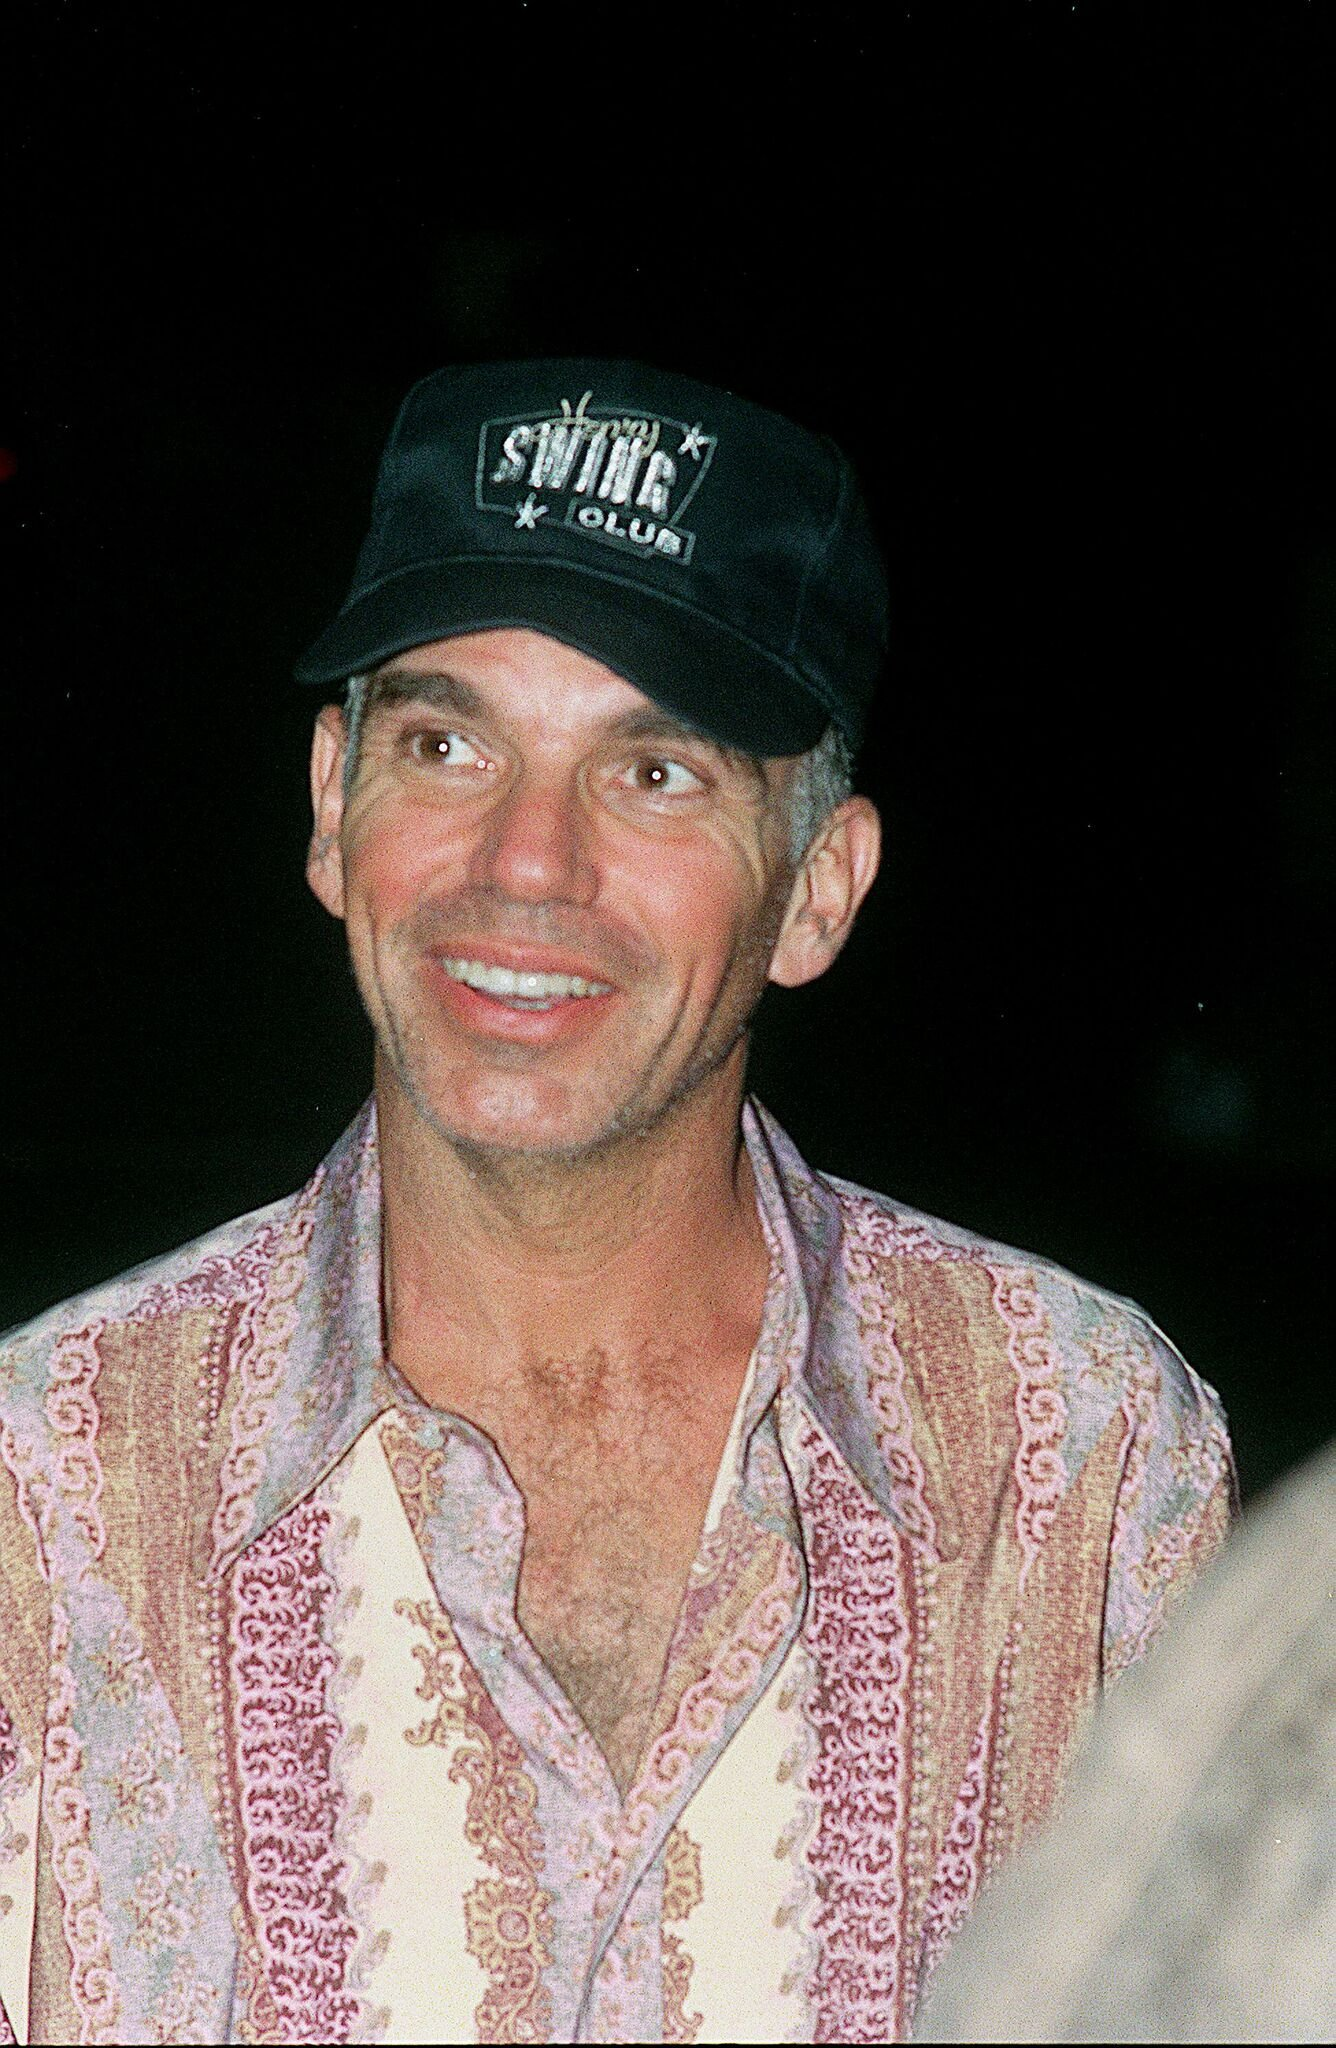 Headshot of Billy Bob Thornton at an event in Hollywood | Getty Images